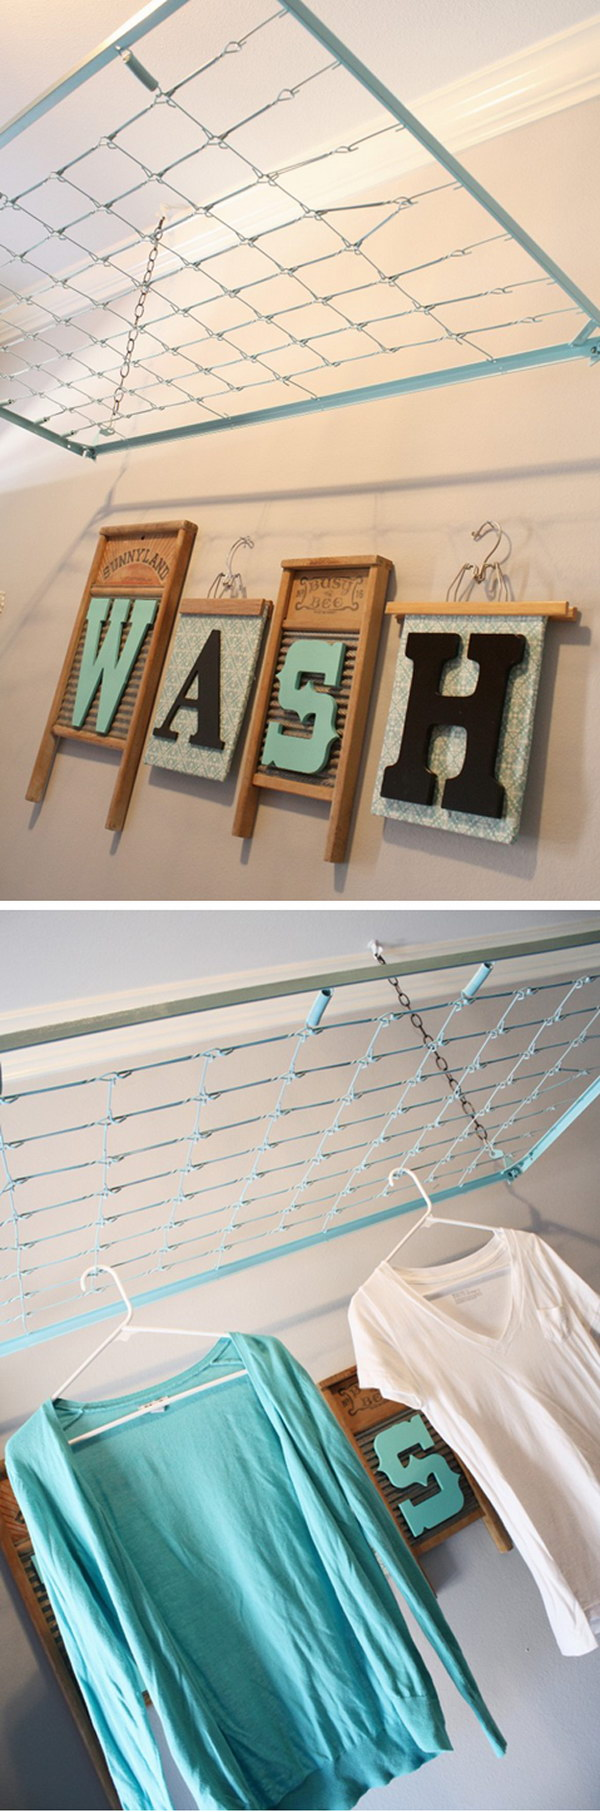 Repurpose A Crib Spring As A Drying Rack